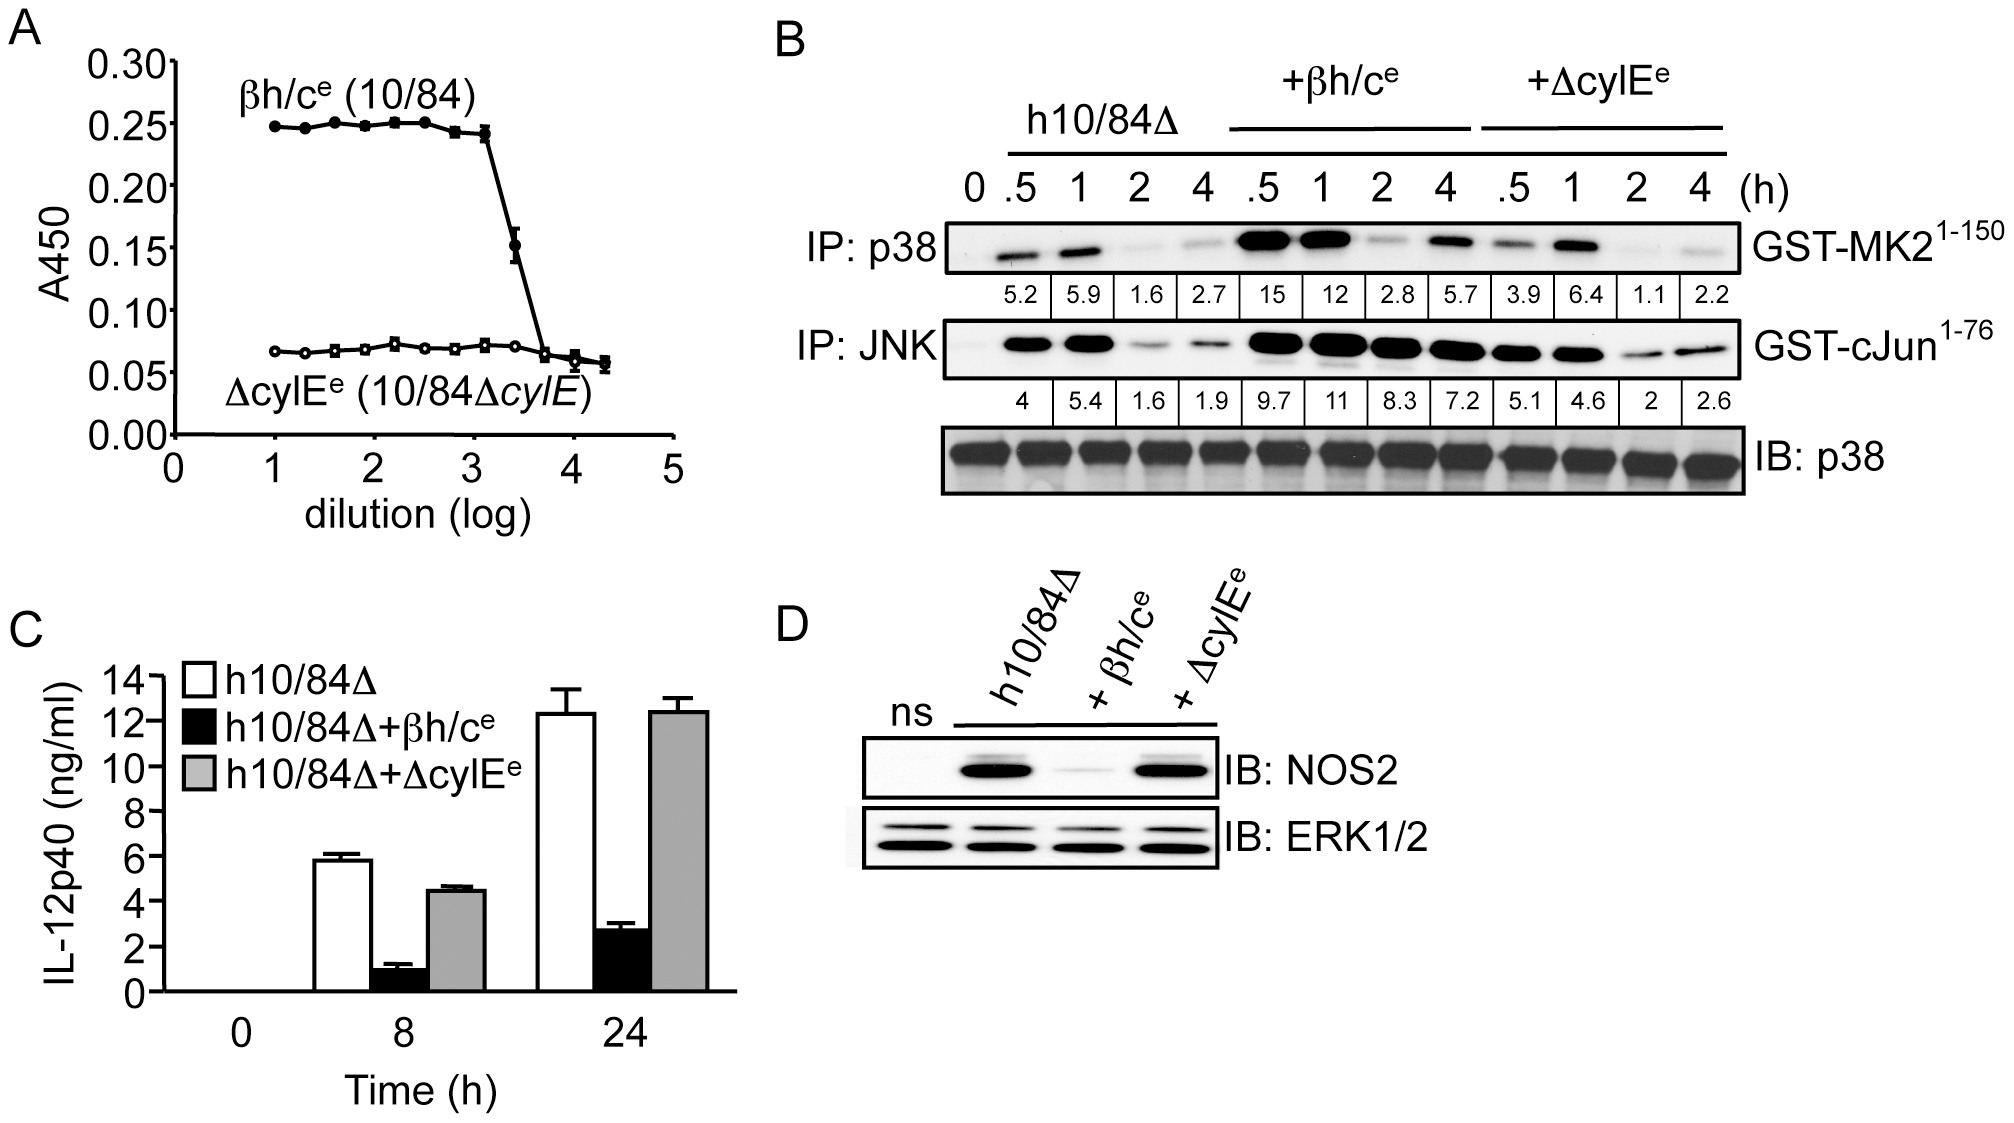 Partially purified βh/c triggers MAPK activation and inhibits IL-12 and NOS2 expression in macrophages.